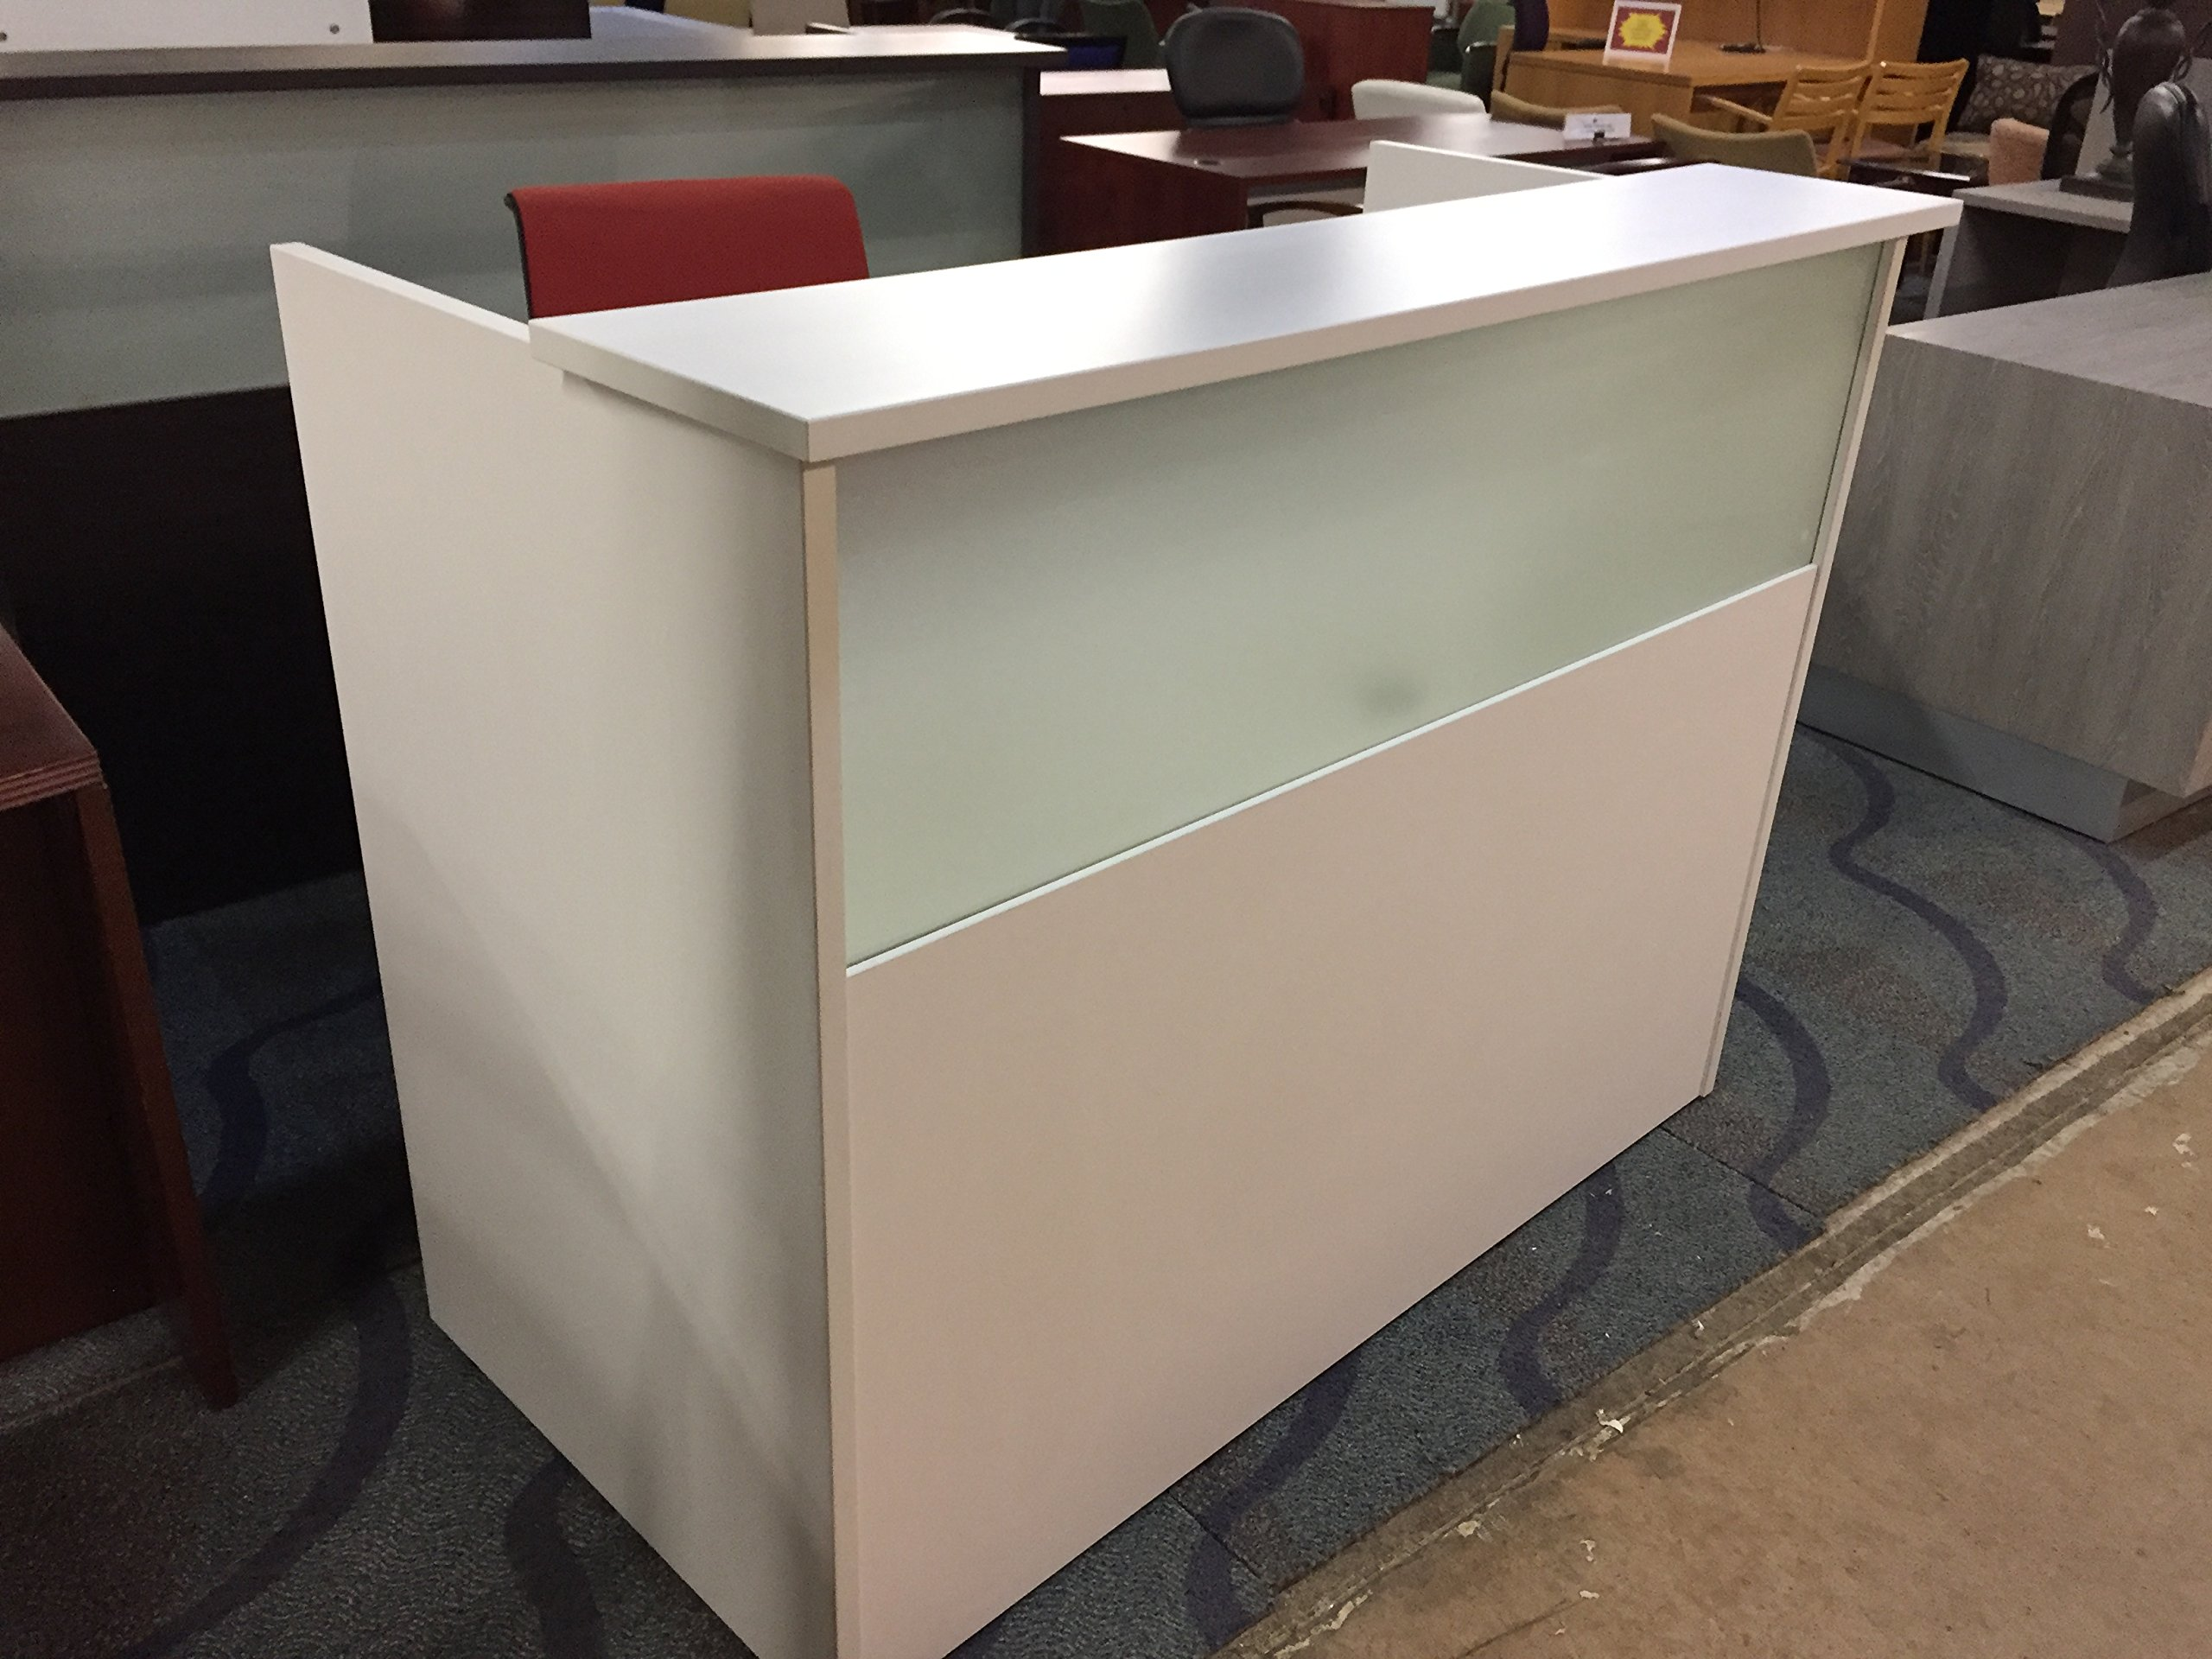 DFS Reception Desk Shell which fits a 15'' Monitor - 60'' W by 30'' D by 44'' H White W/Frosted Glass Front by DFS Designs